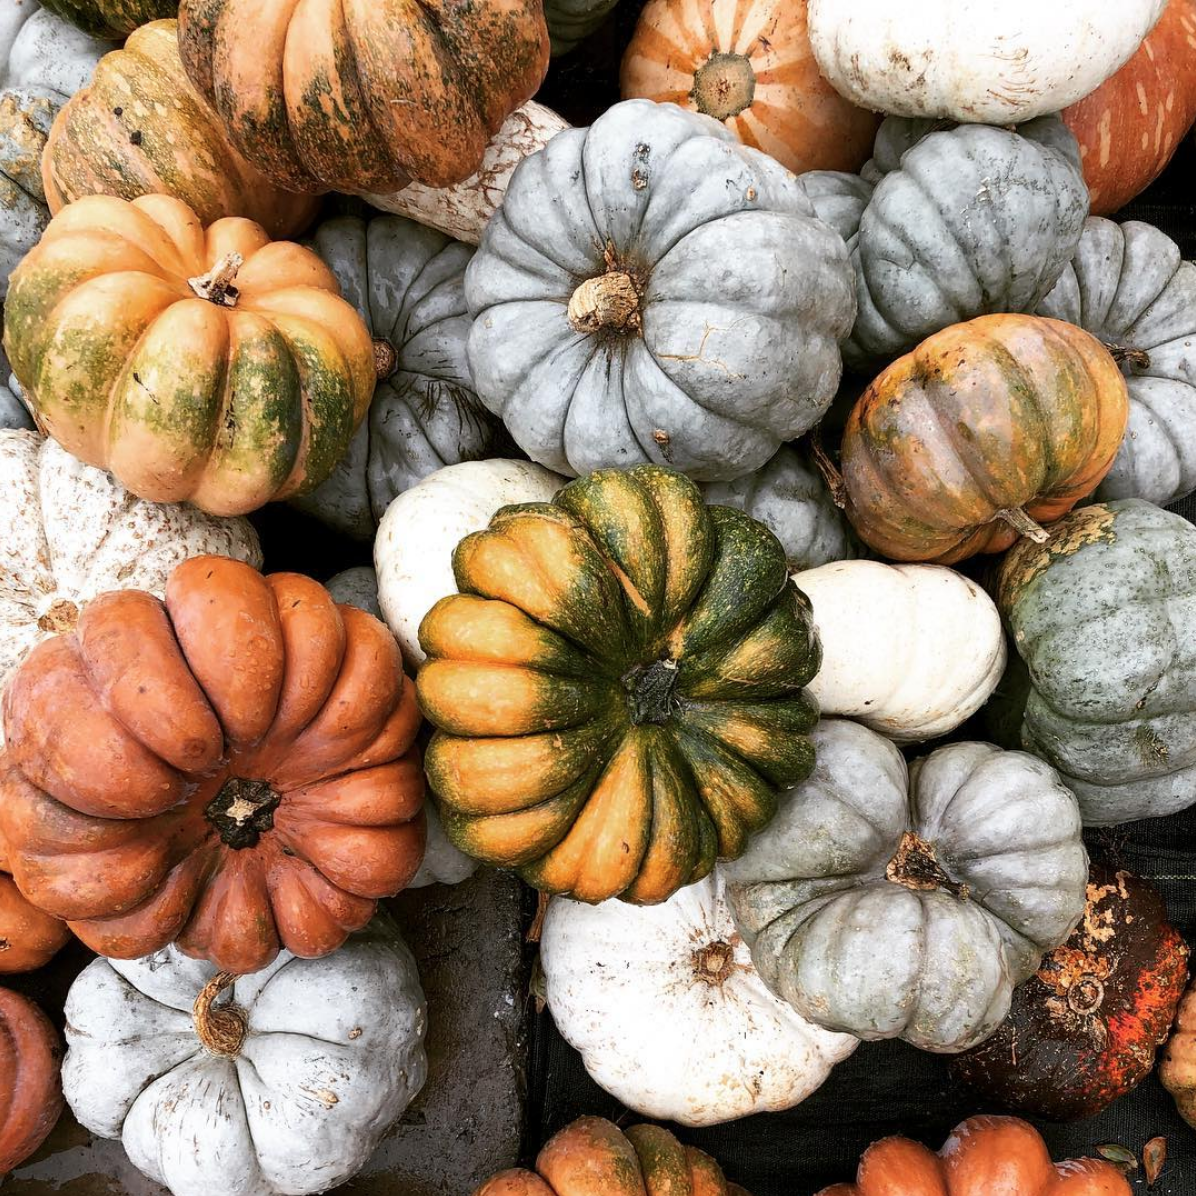 A Seasonal Guide for Fall & Winter: What to Eat & How to Live | simplerootswellness.com #podcast #seasonality #fallfood #healthtip